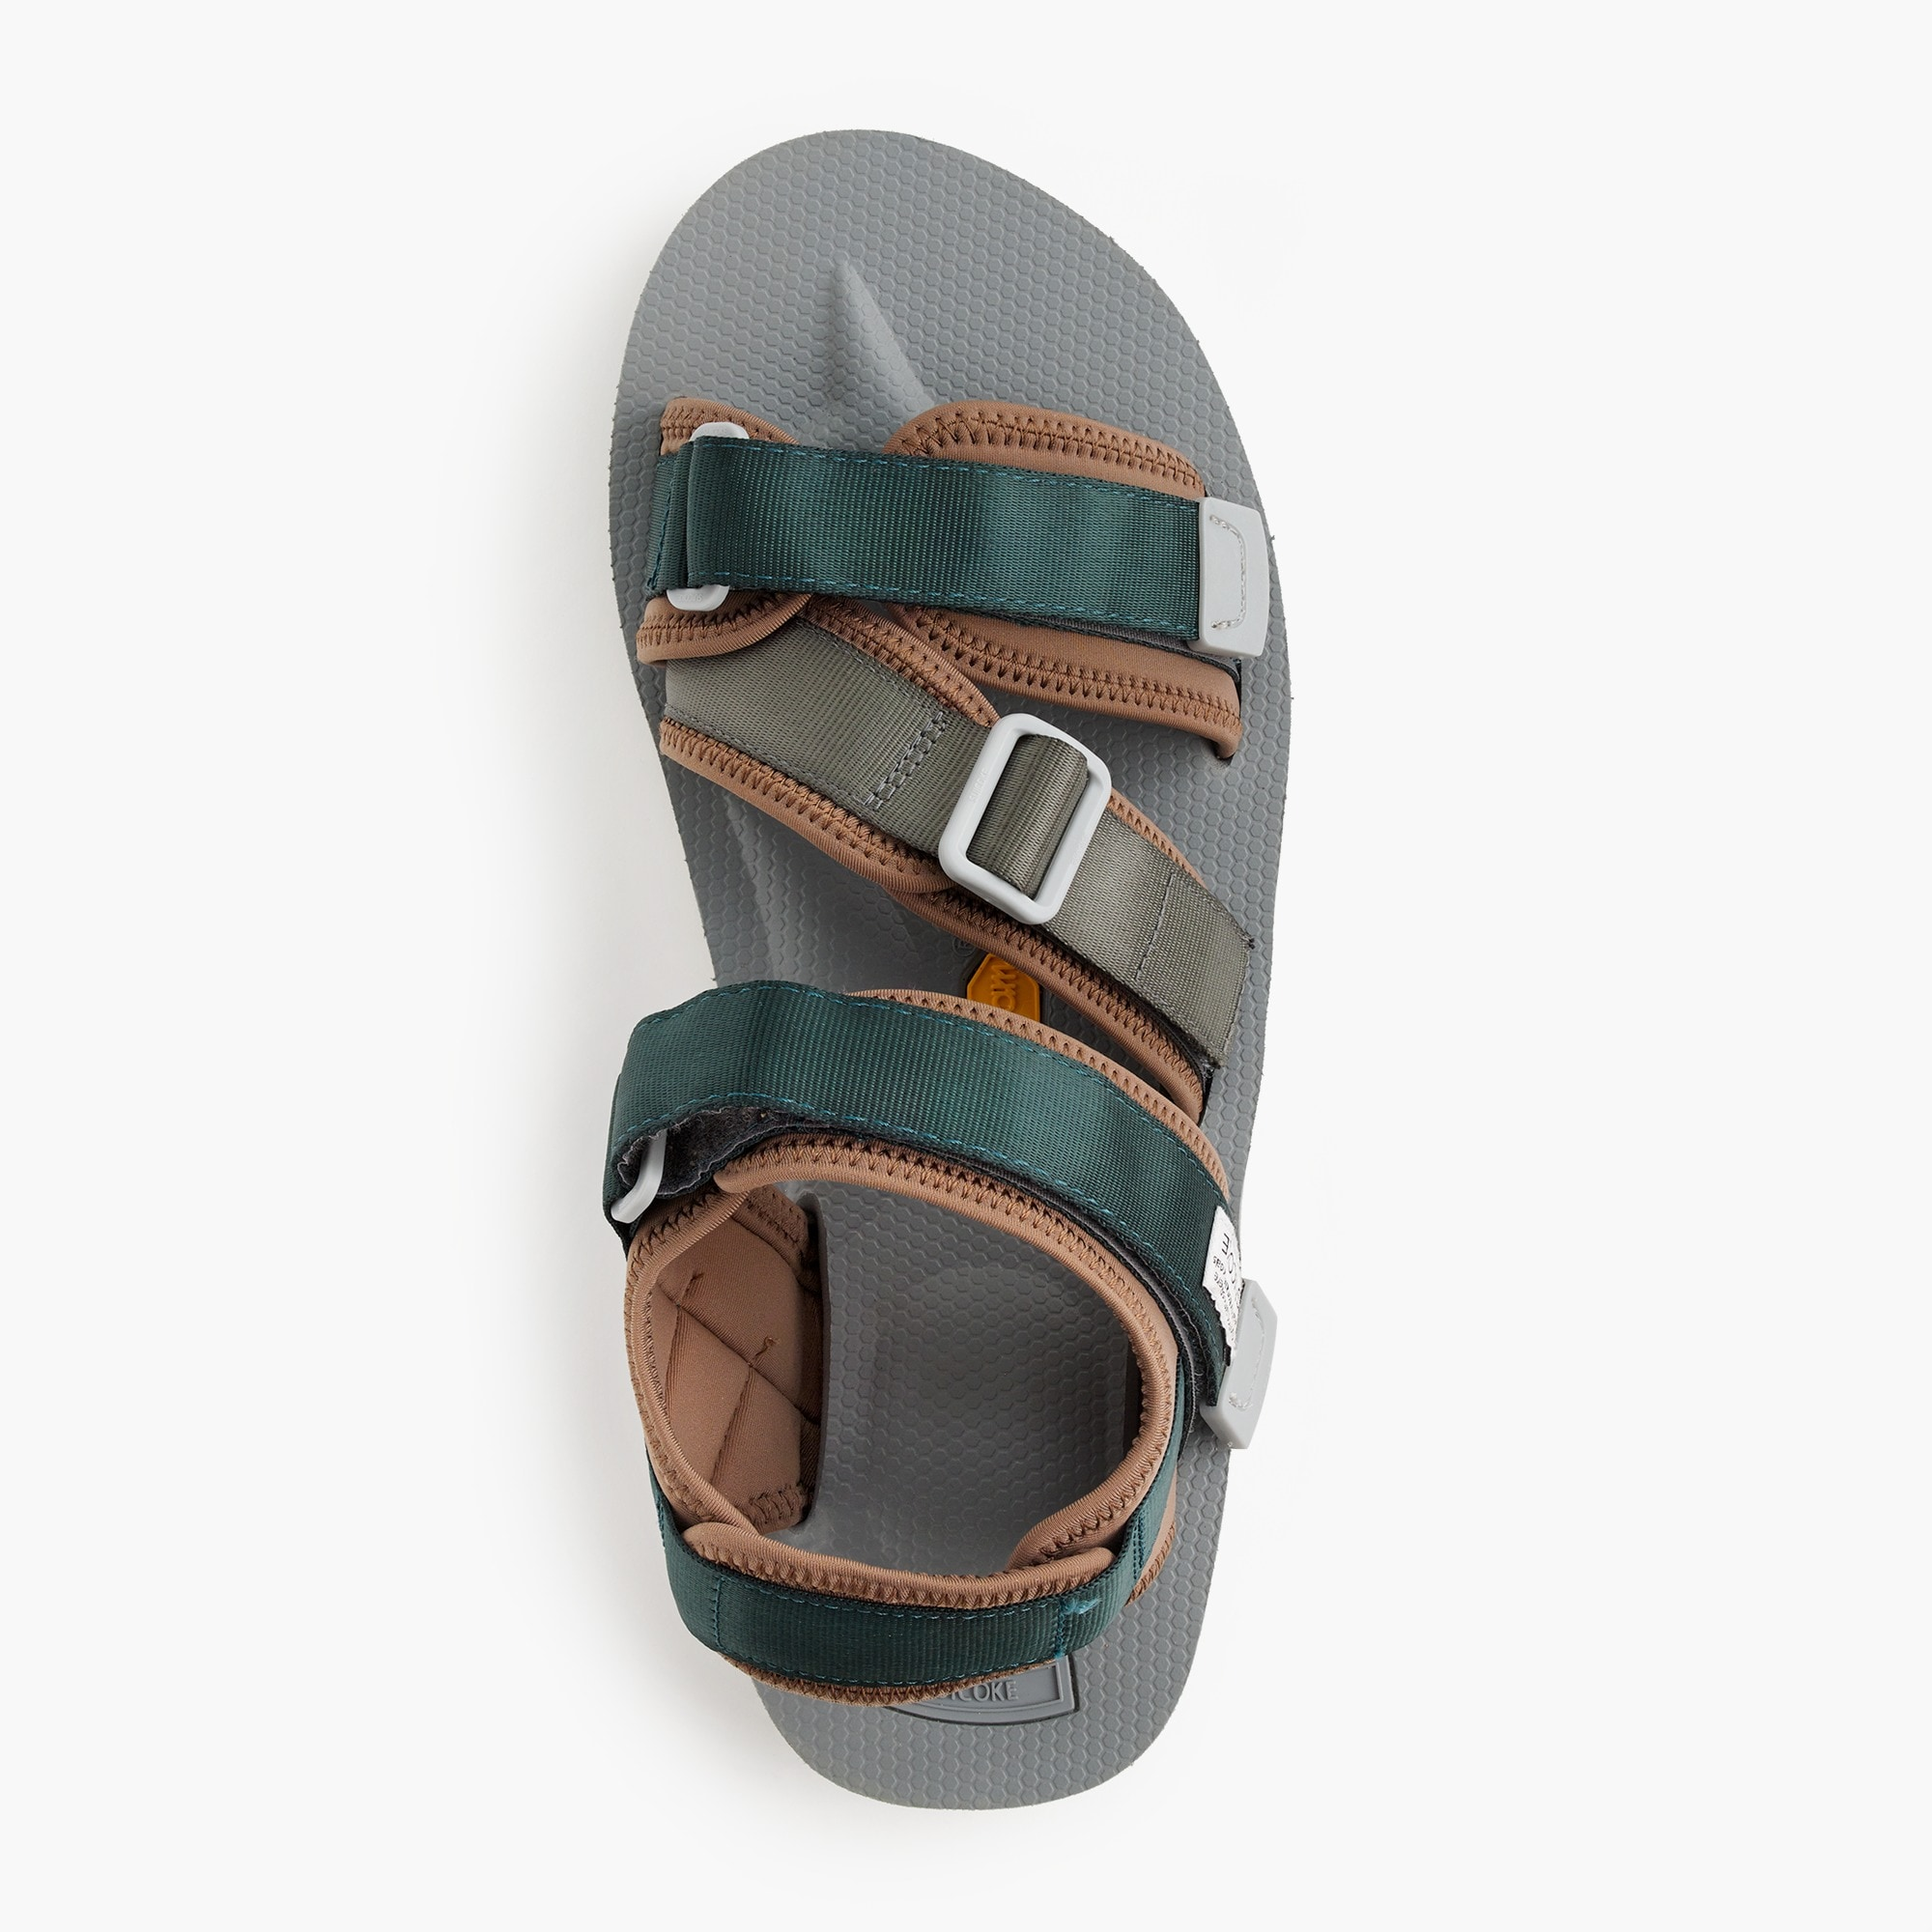 Suicoke™ for J.Crew KISEE-V sandals